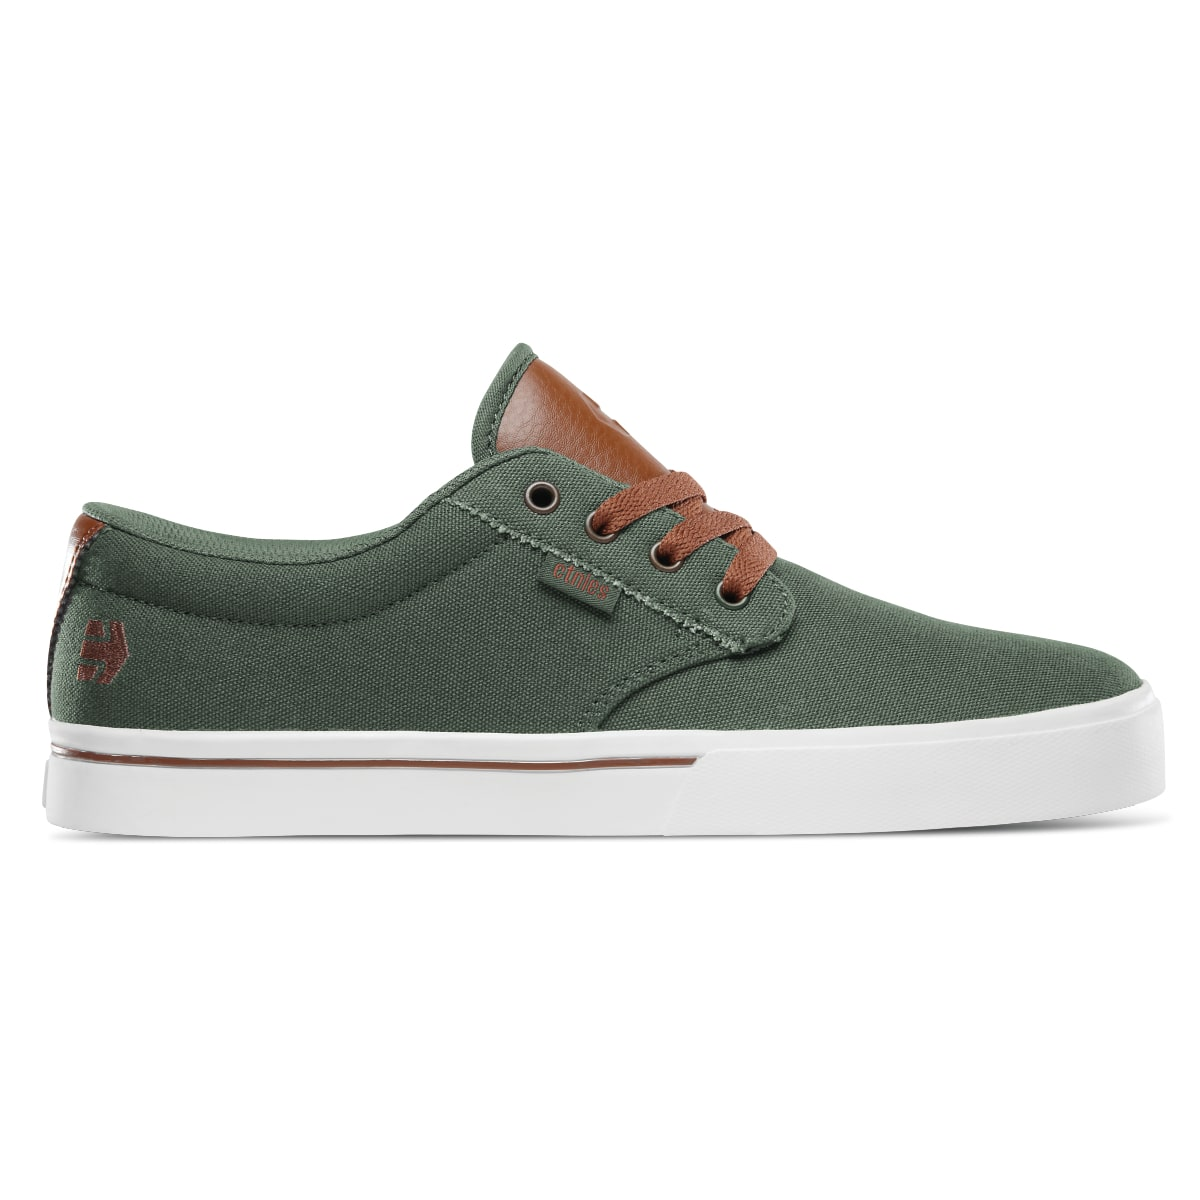 Cheap Etnies Shoes Uk